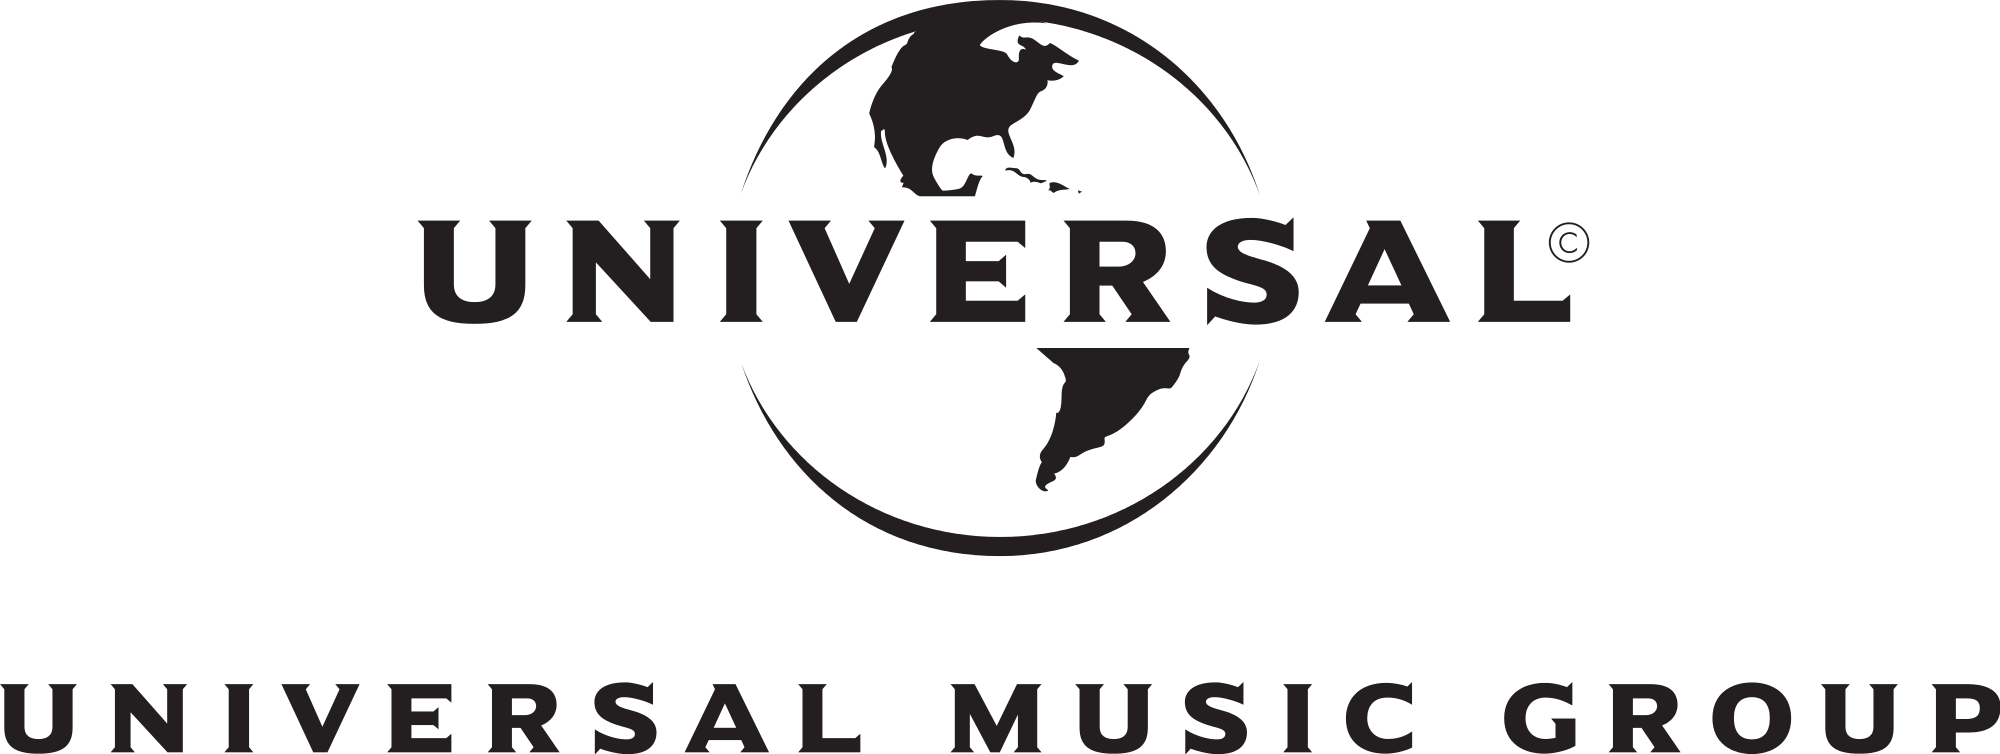 Image px svg logopedia. Universal music group logo png svg library download